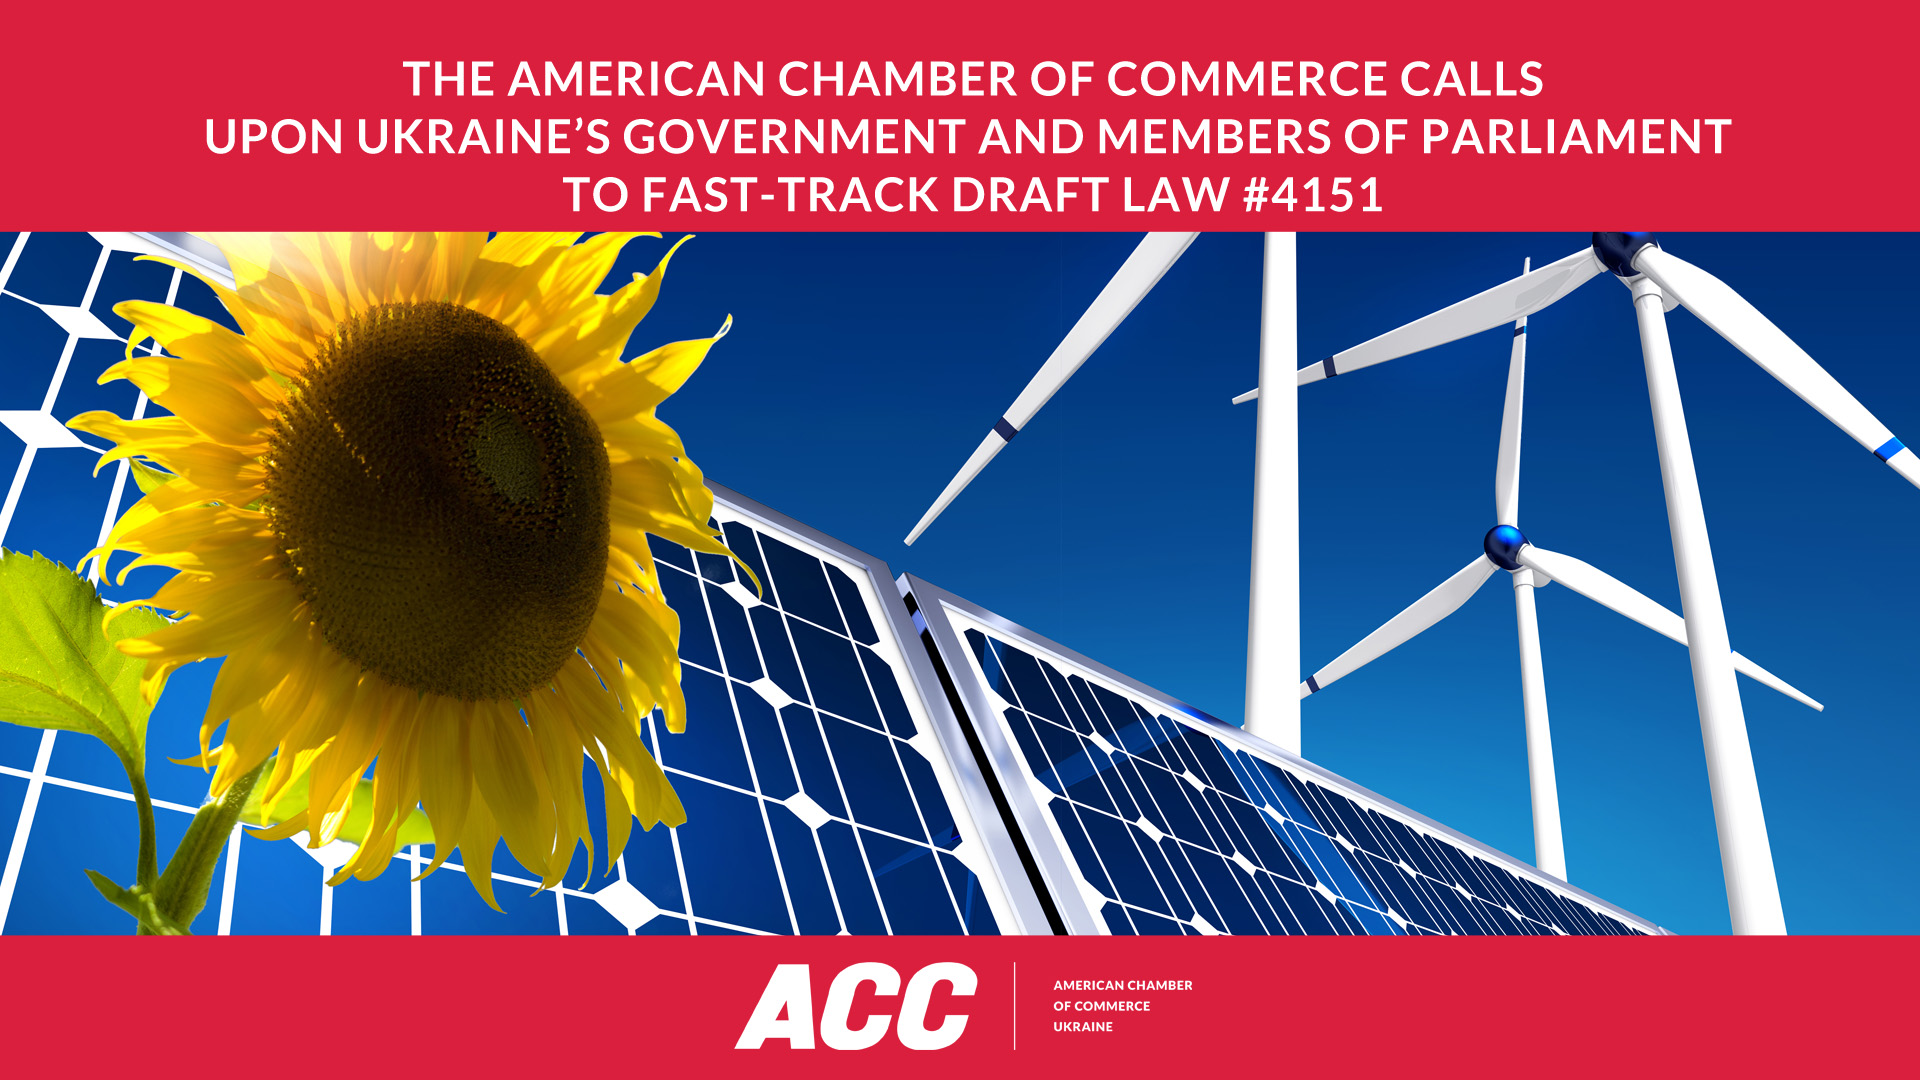 The American Chamber of Commerce Calls upon Ukraine's Government and MPs to Fast-Track Draft Law #4151